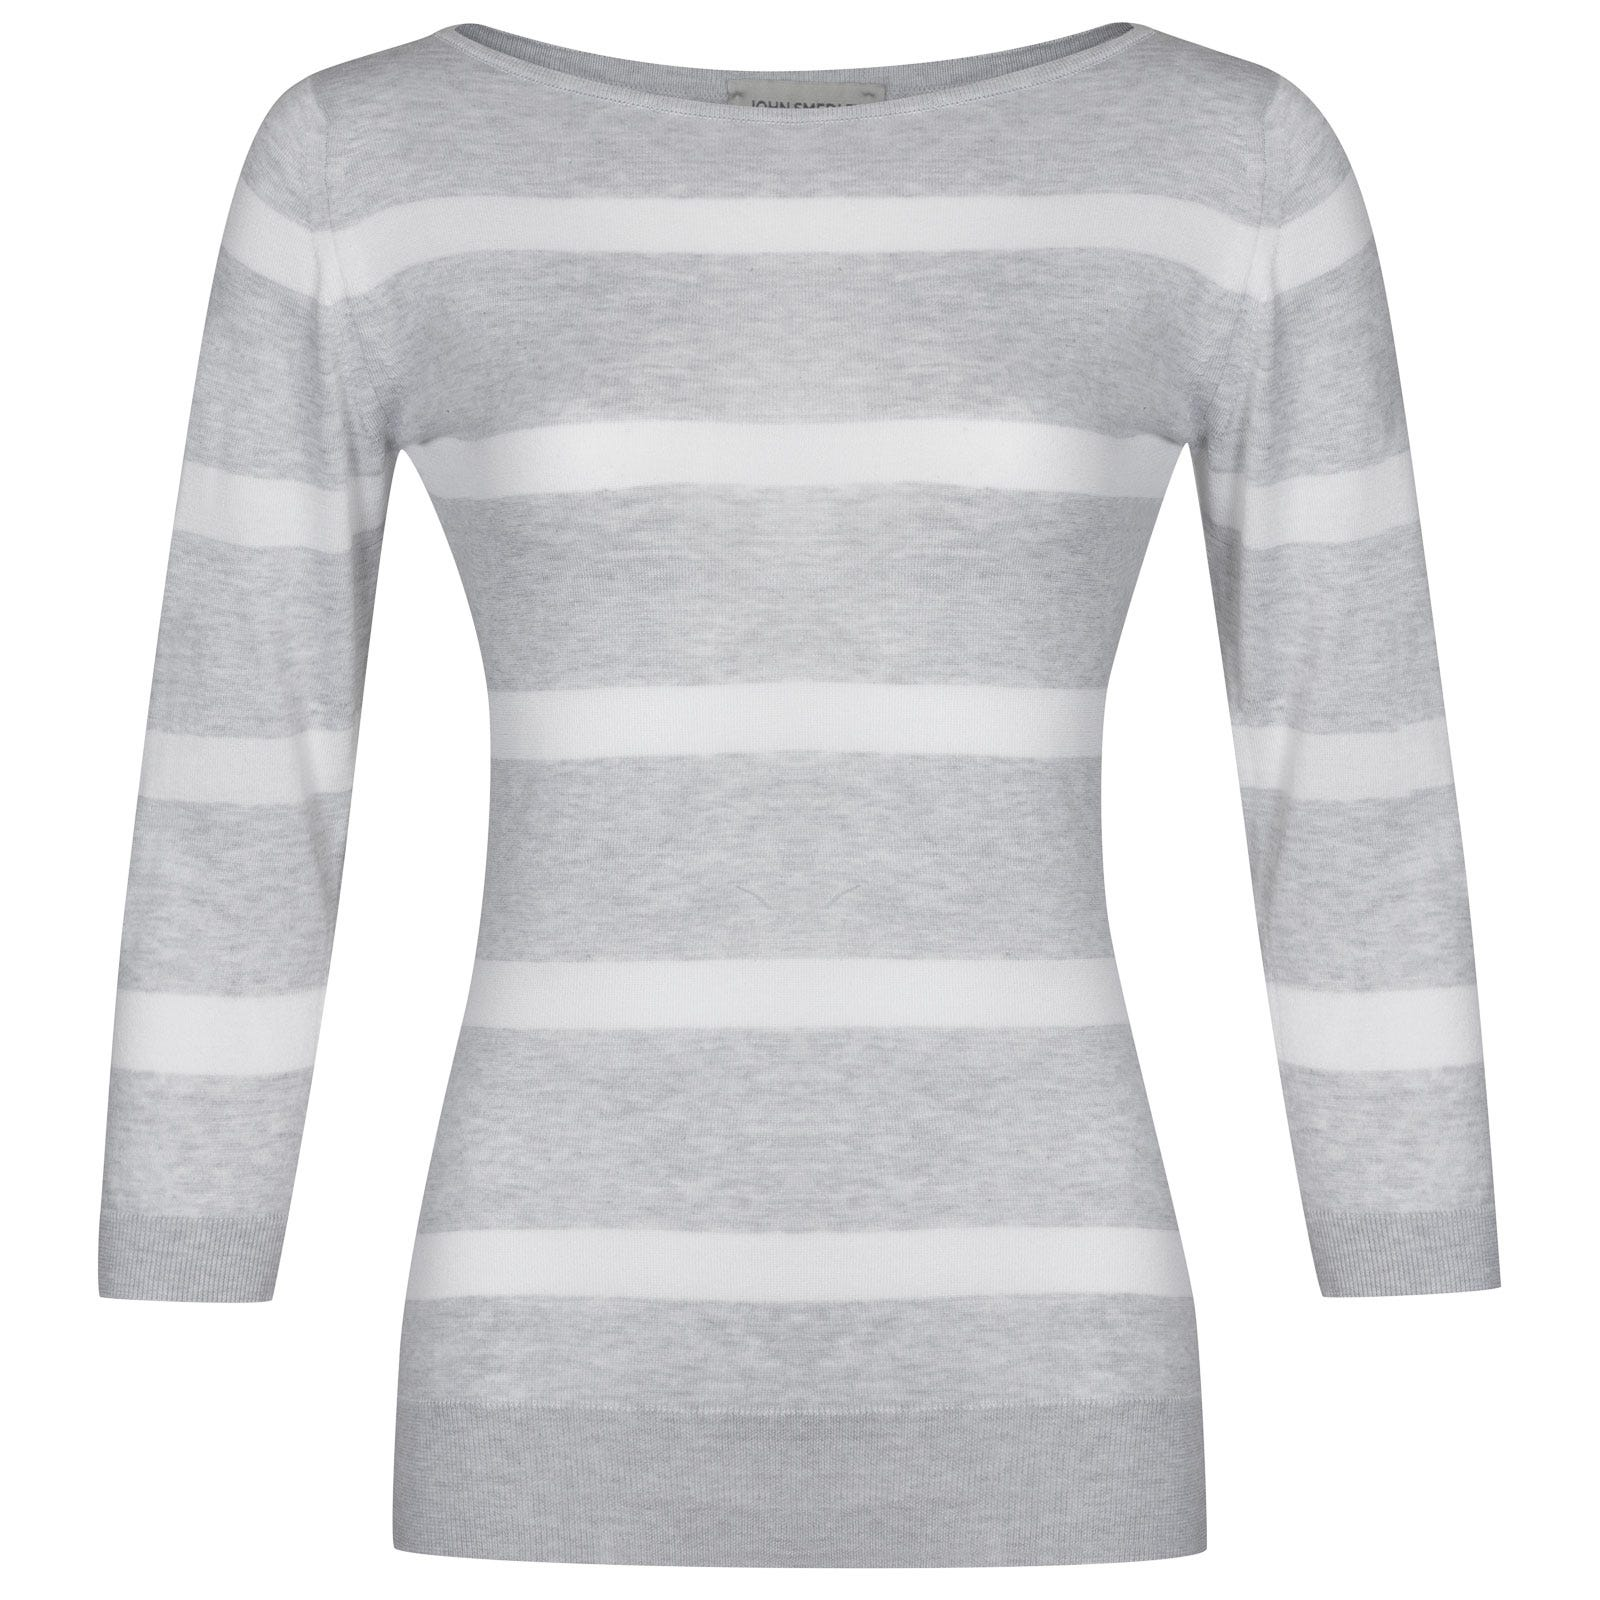 John Smedley Ayton in Feather Grey/White-S